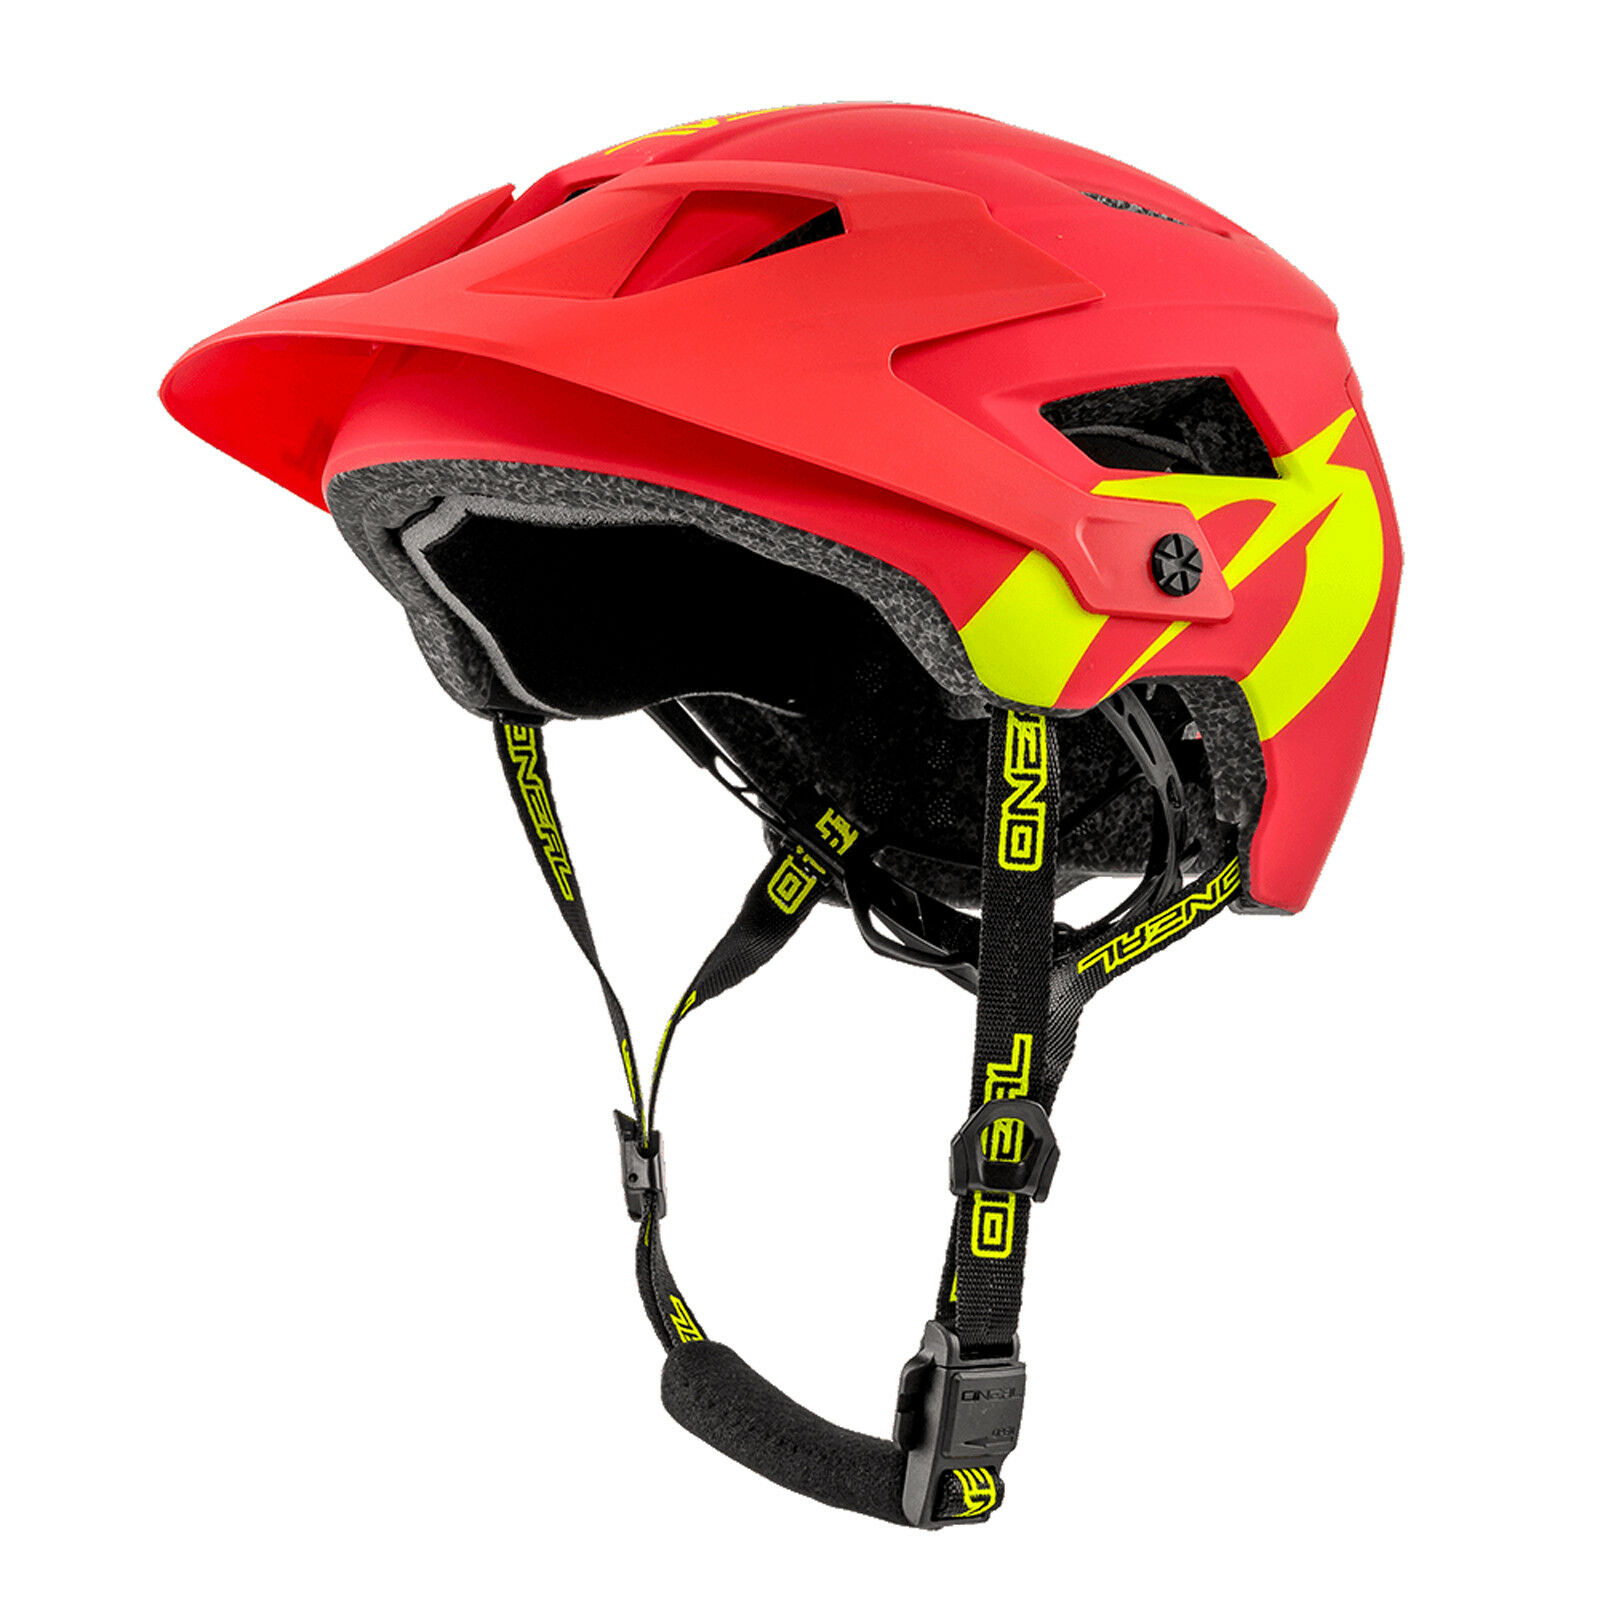 O 'Neal Defender 2.0 Solid ALL MOUNTAIN MTB BICICLETTA CASCO ROSSOGIALLO 2019 ONEAL